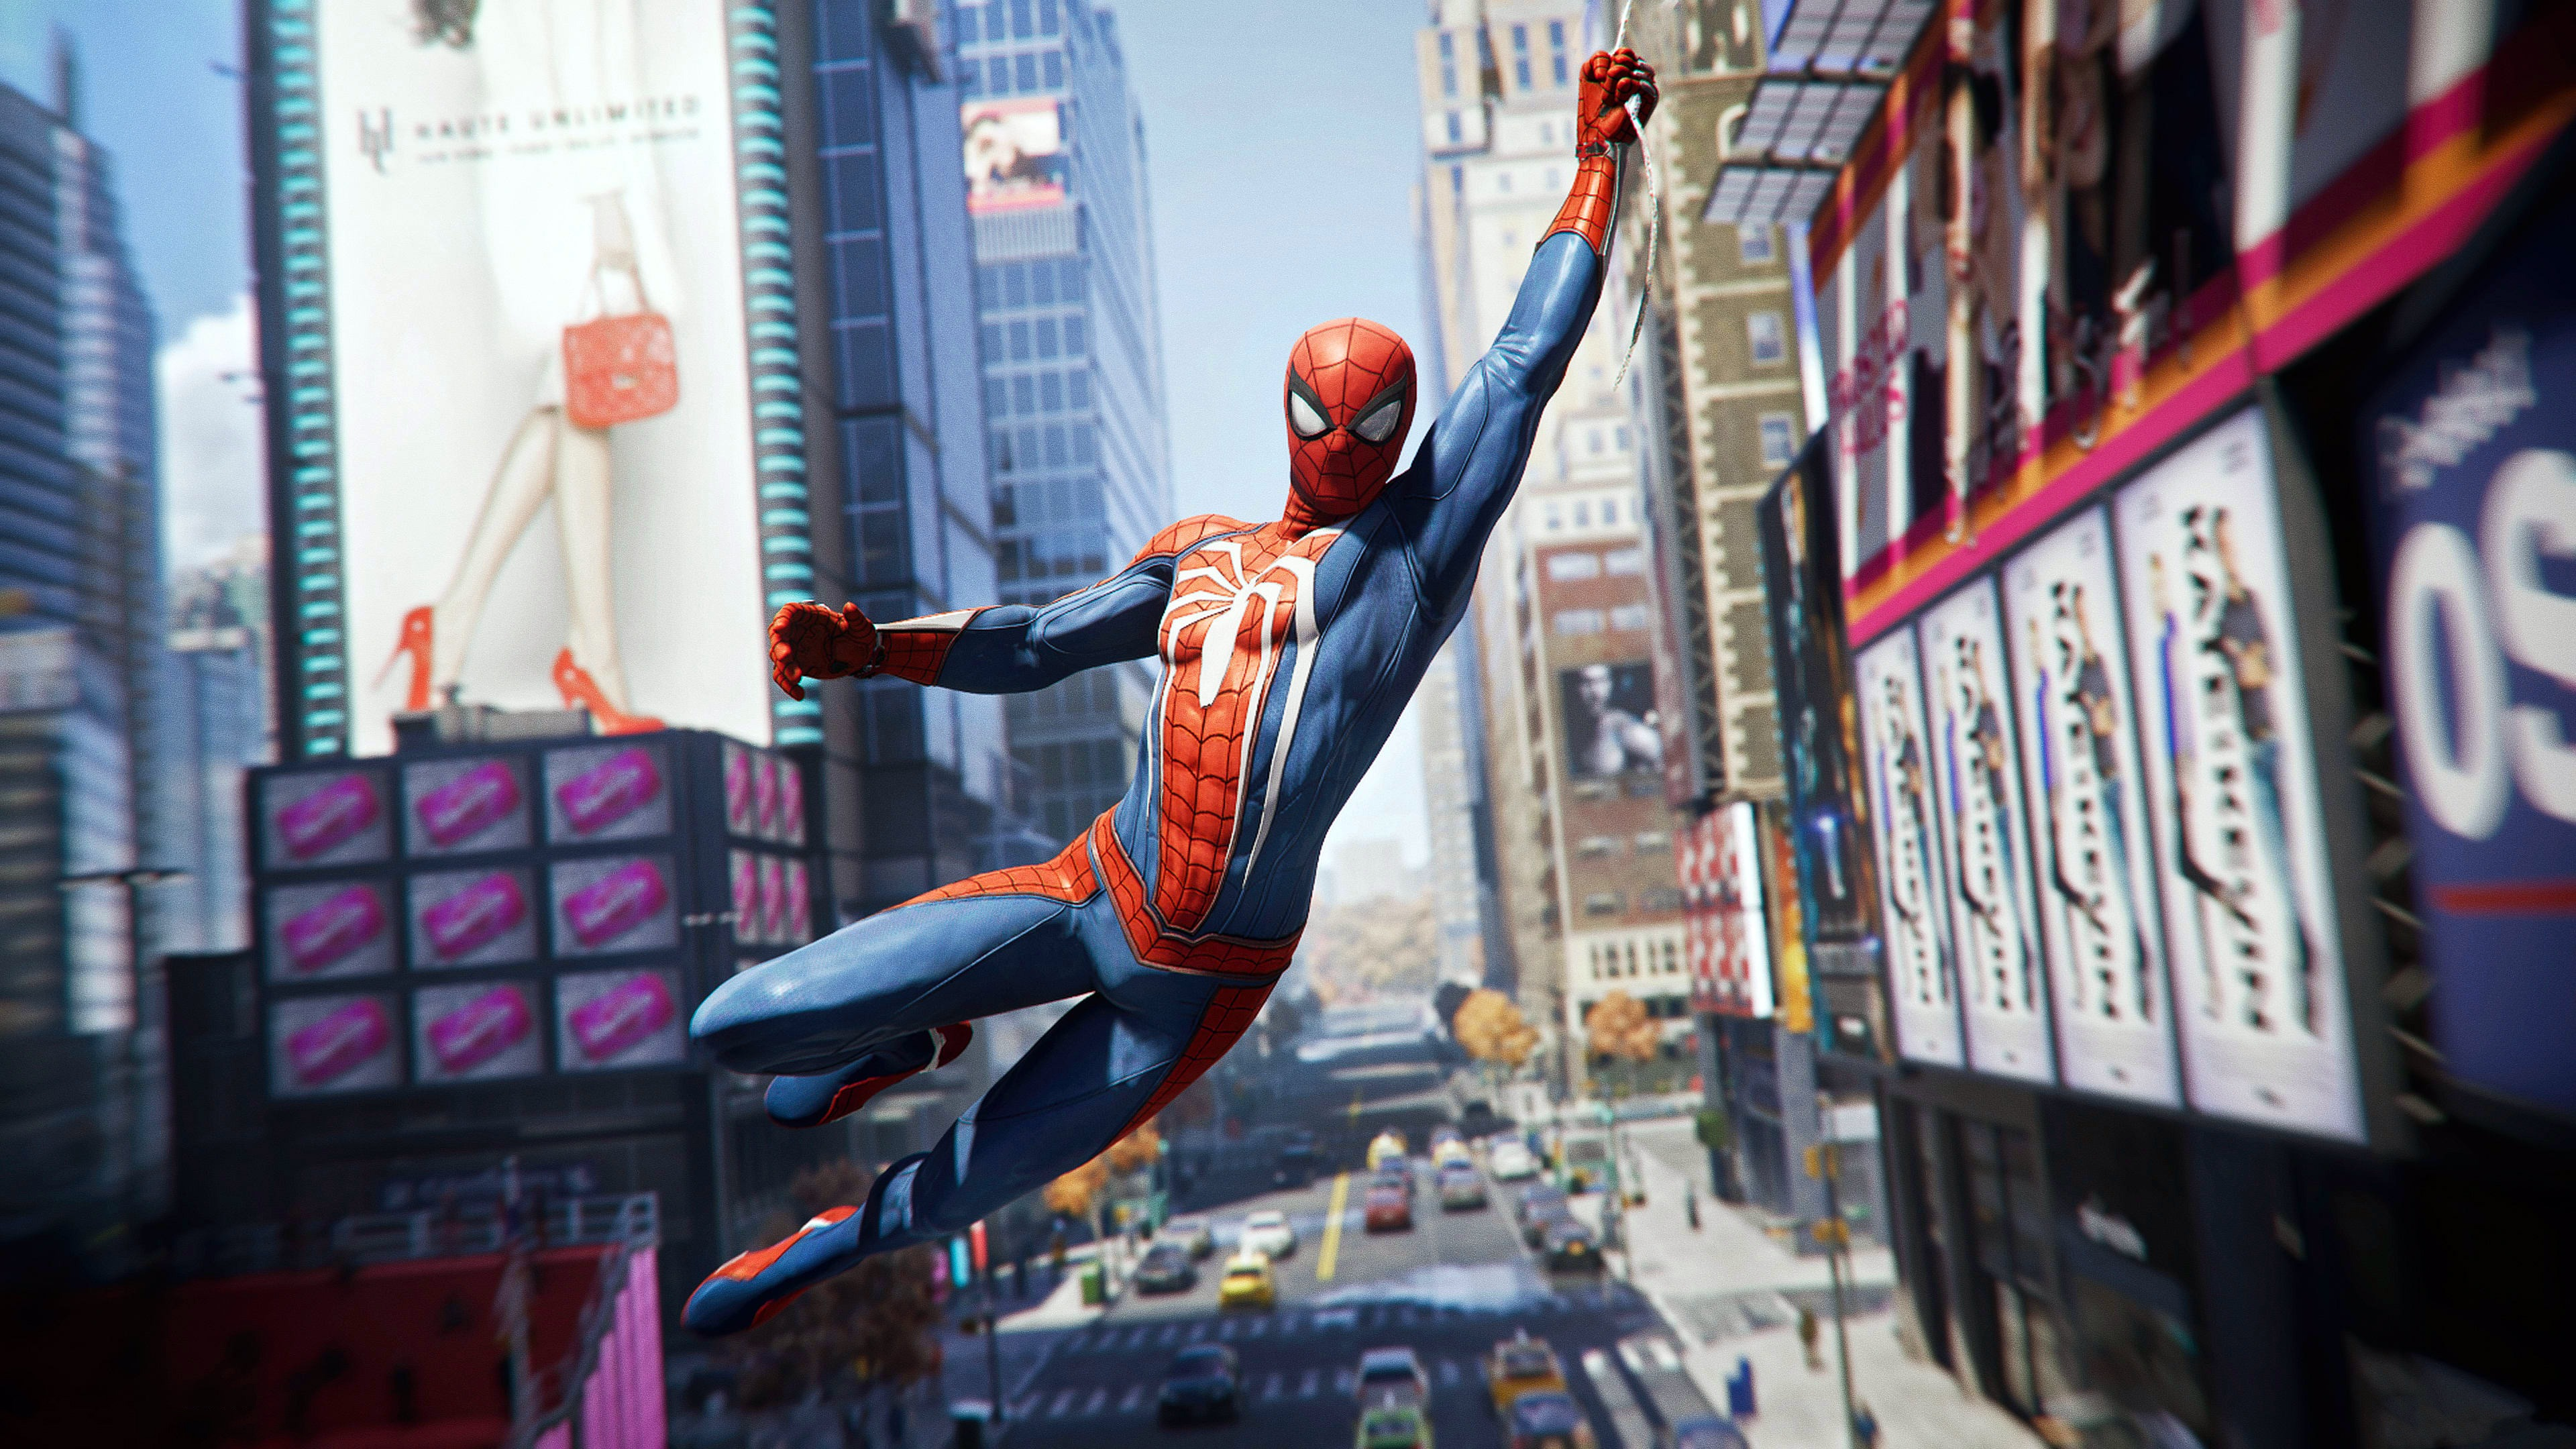 Spiderman 2018 Ps4 Game Hd Poster Wallpaper For Desktop